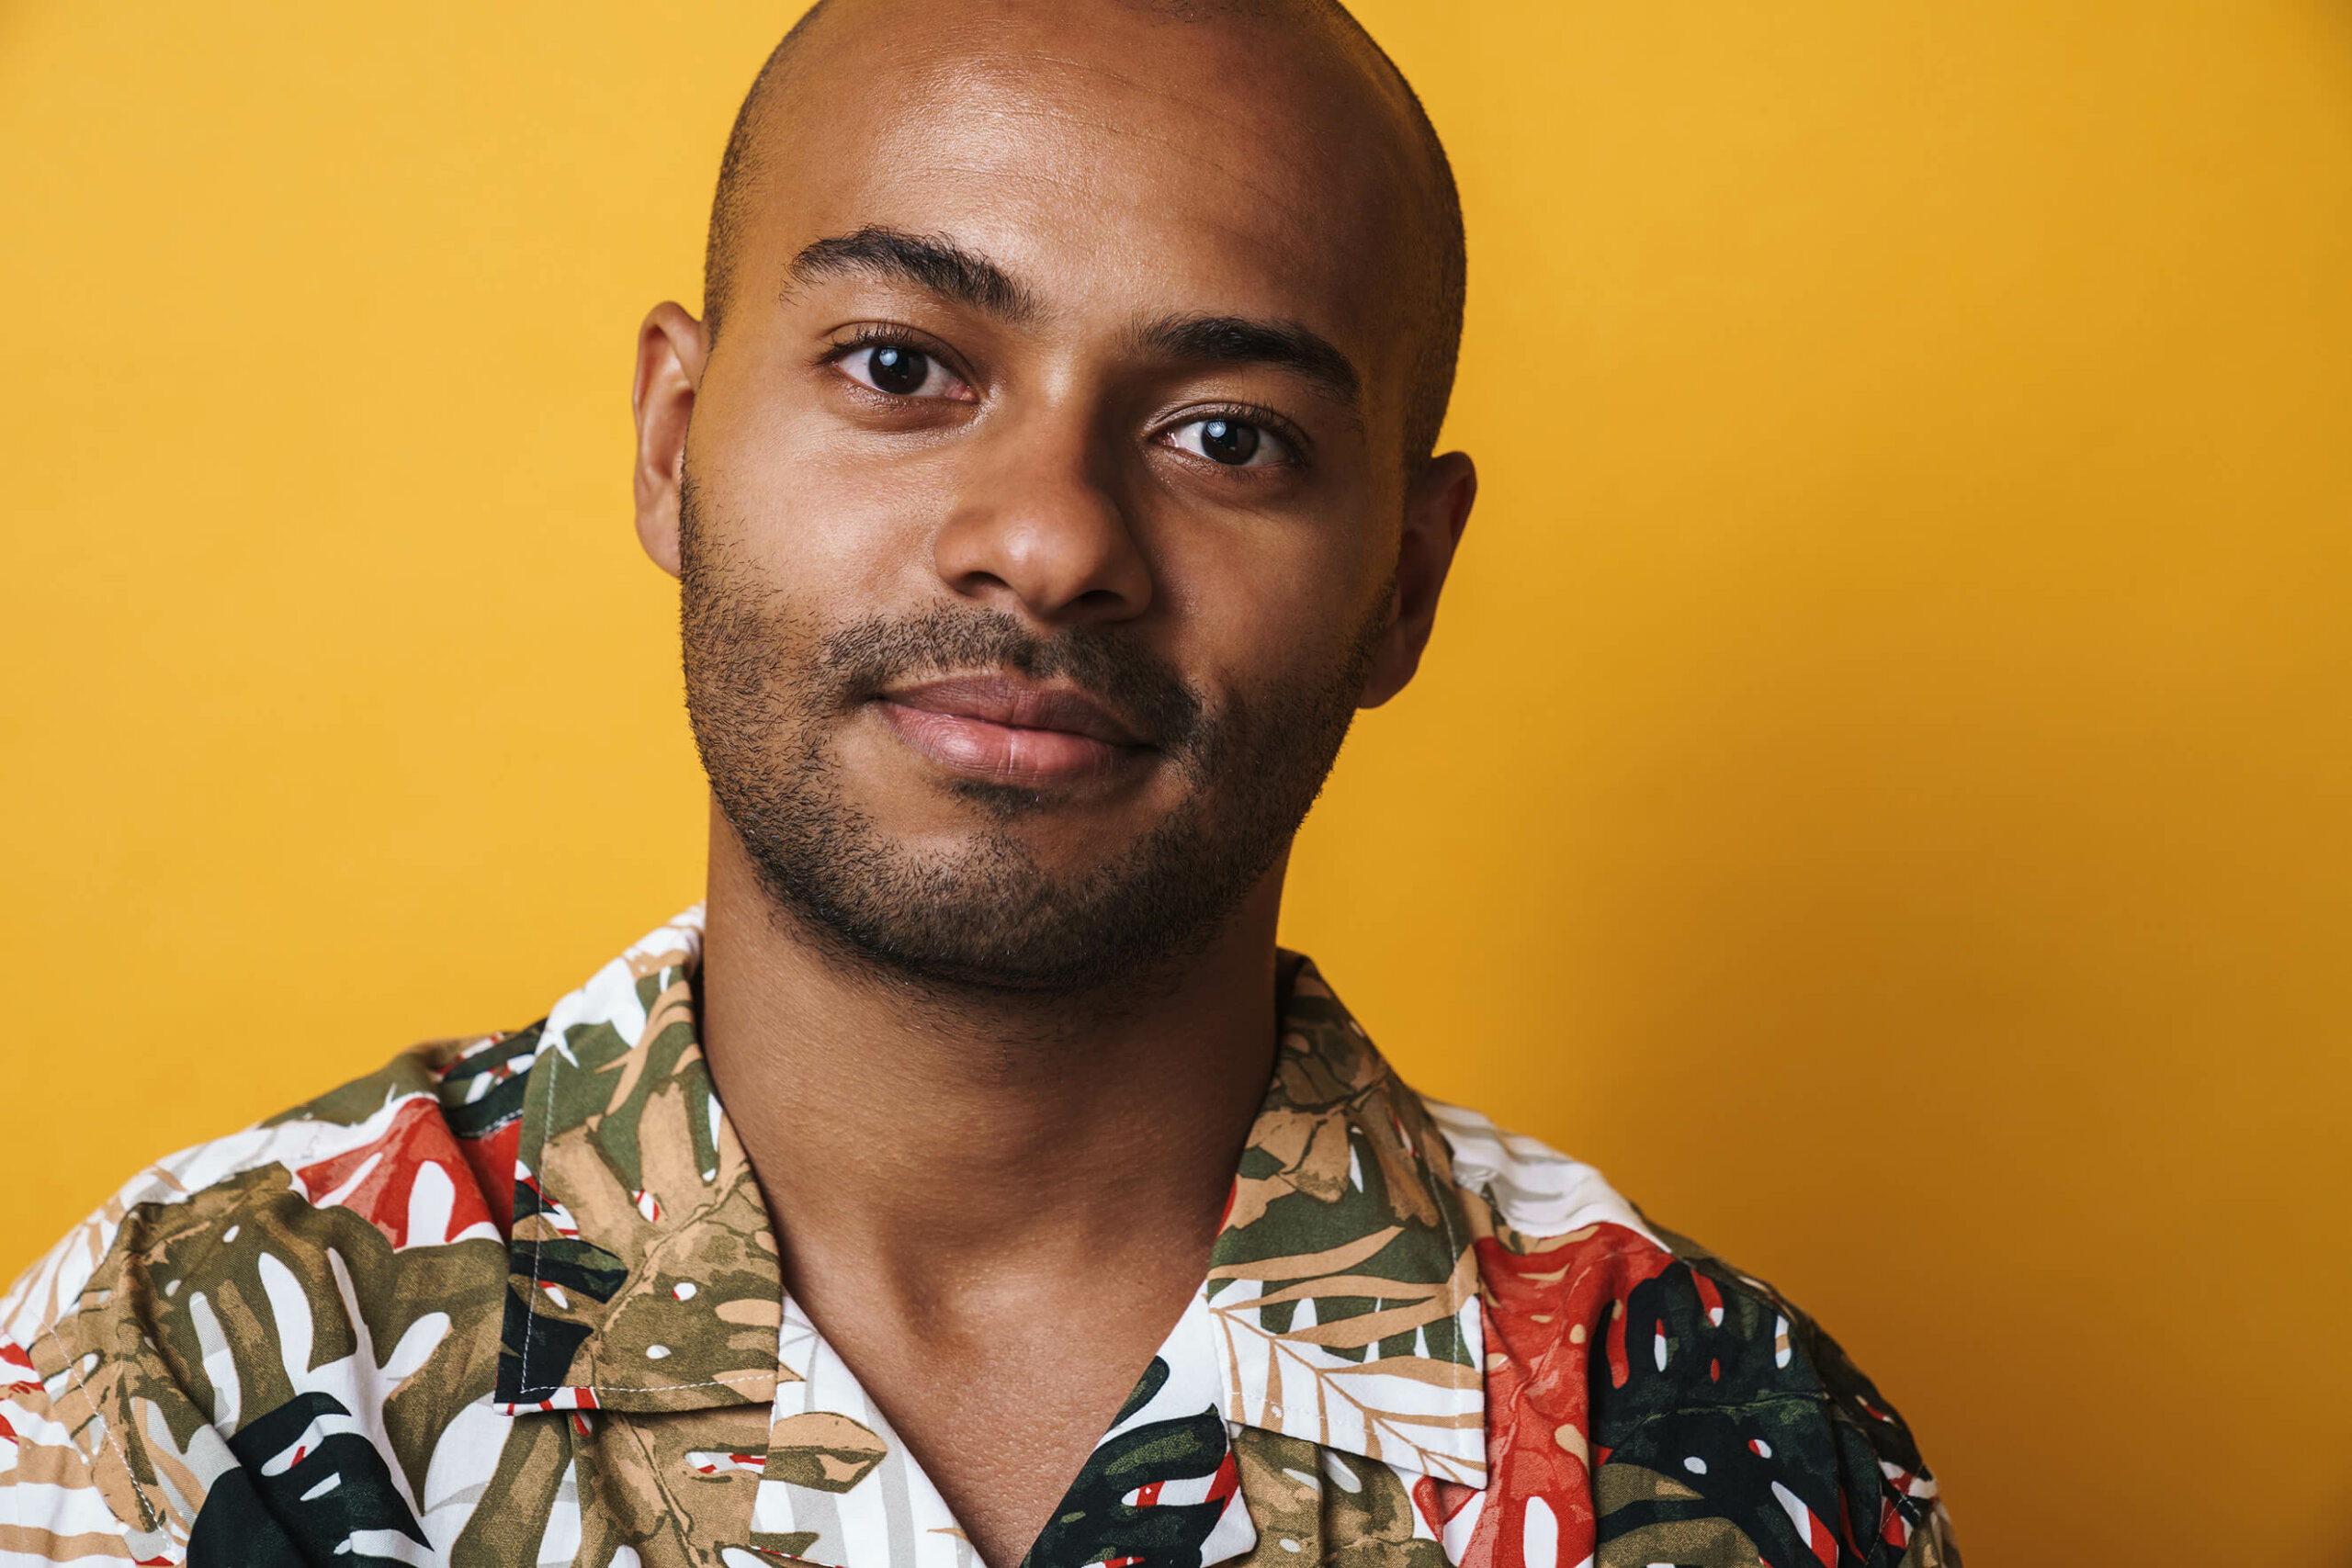 A close up of a man with a shaved head and bright floral shirt